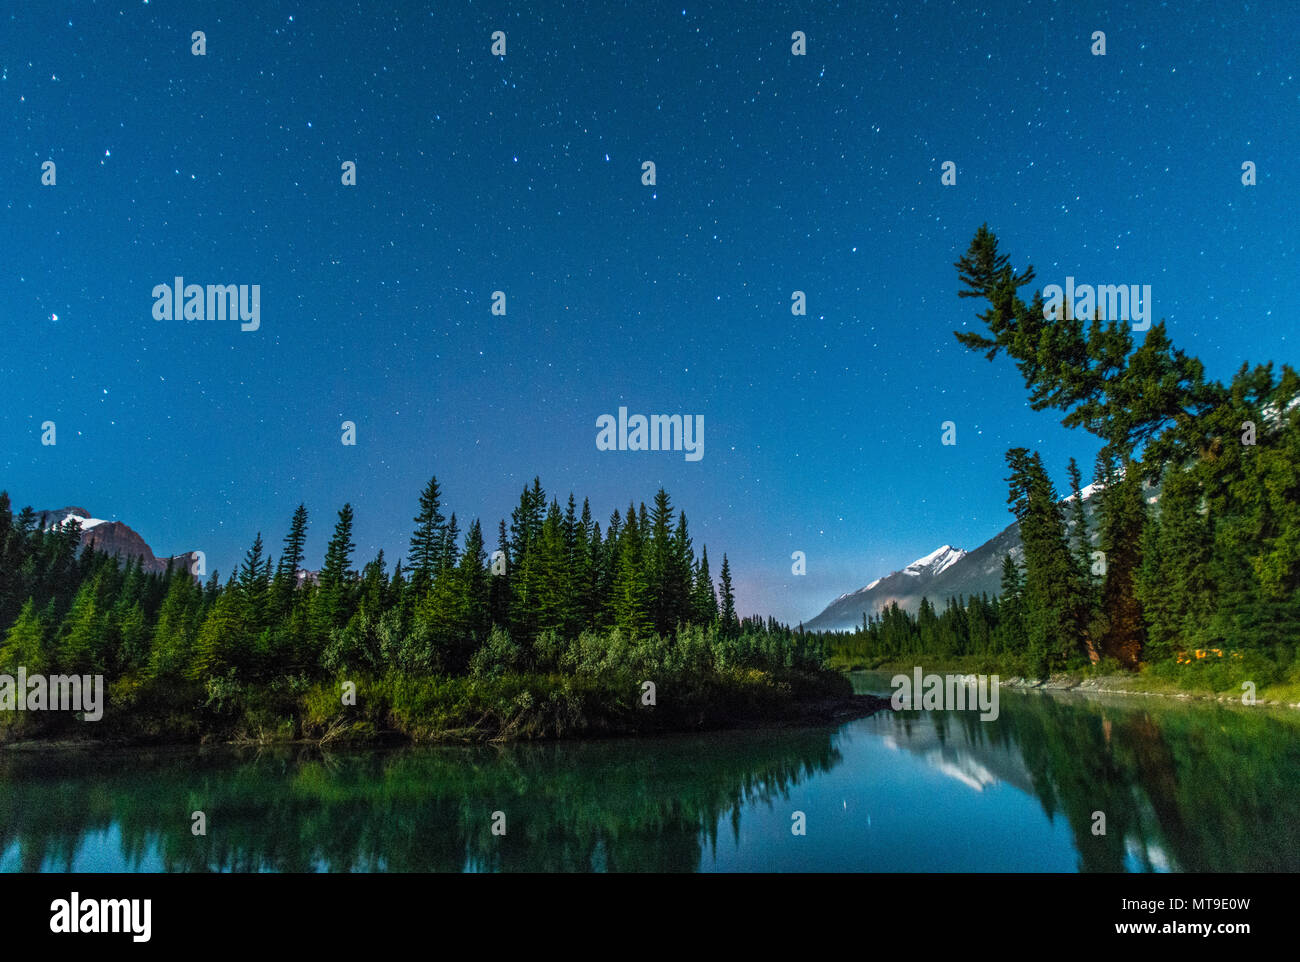 Caption of the North: starry sky in the Bow river valley in Banff national park. Mountains and trees reflected in the blue waters. Campsite, tent. Stock Photo